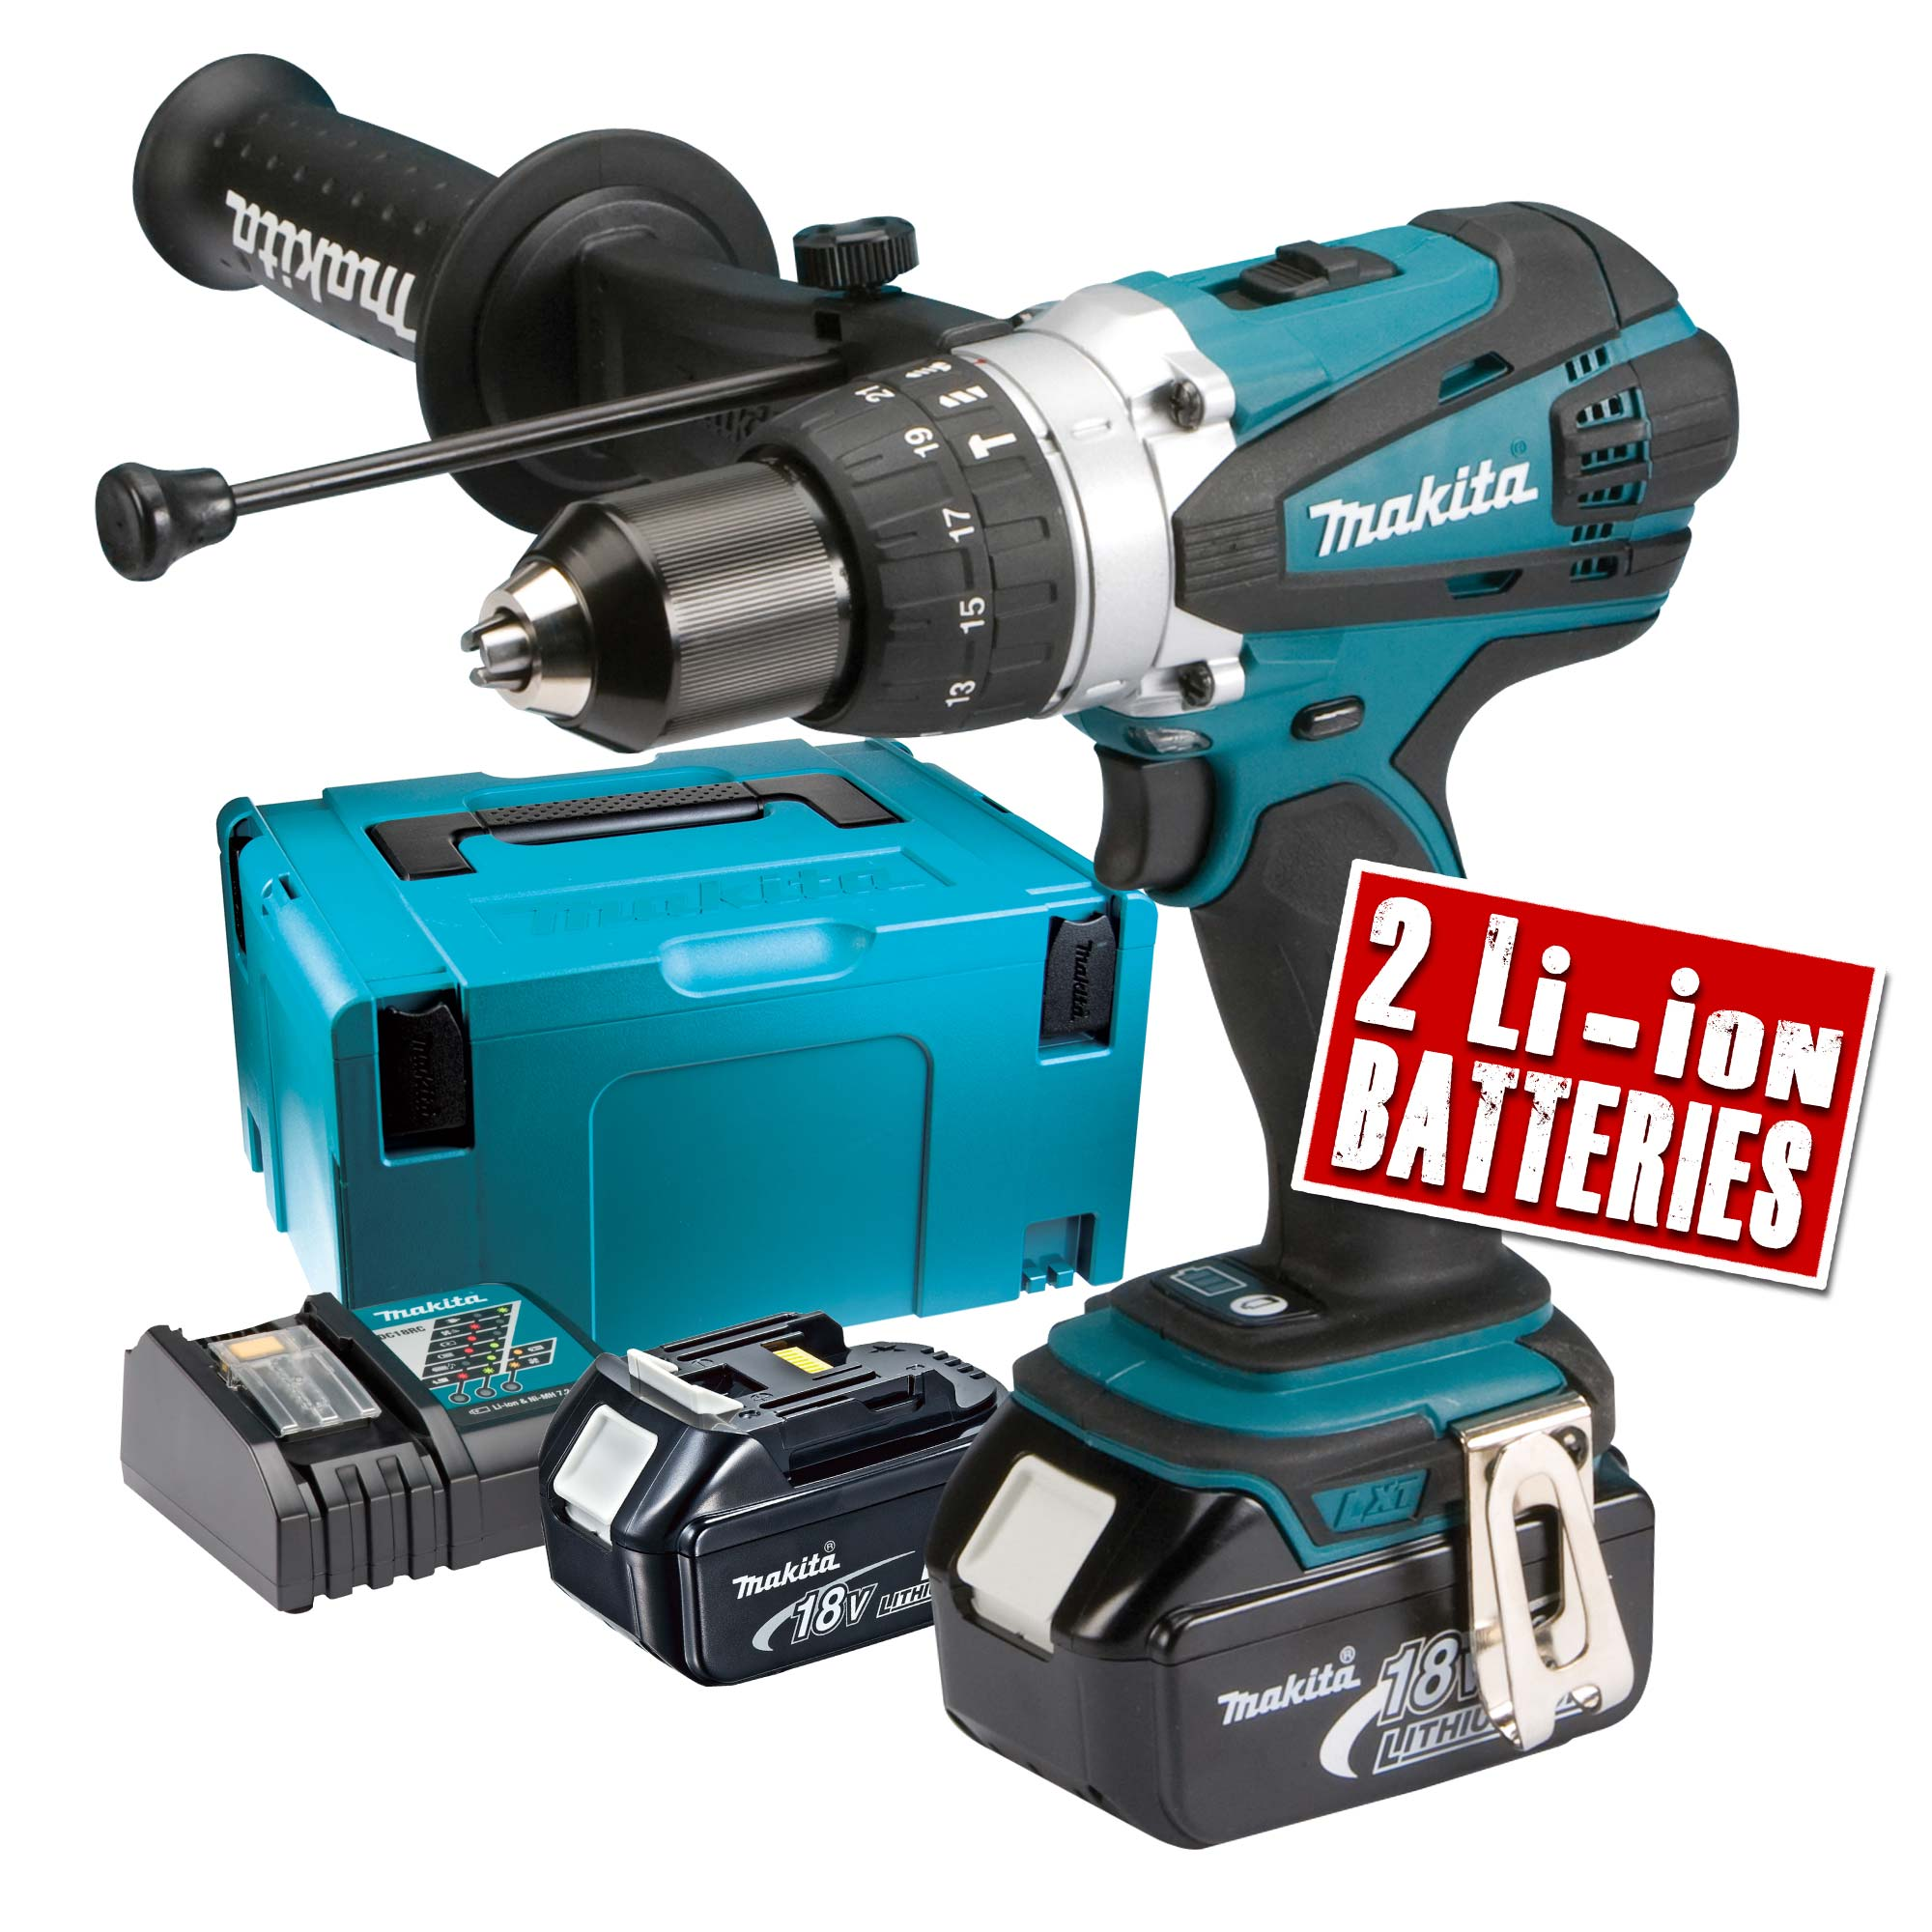 makita dhp458rj makita 18v li ion hammer drill driver. Black Bedroom Furniture Sets. Home Design Ideas